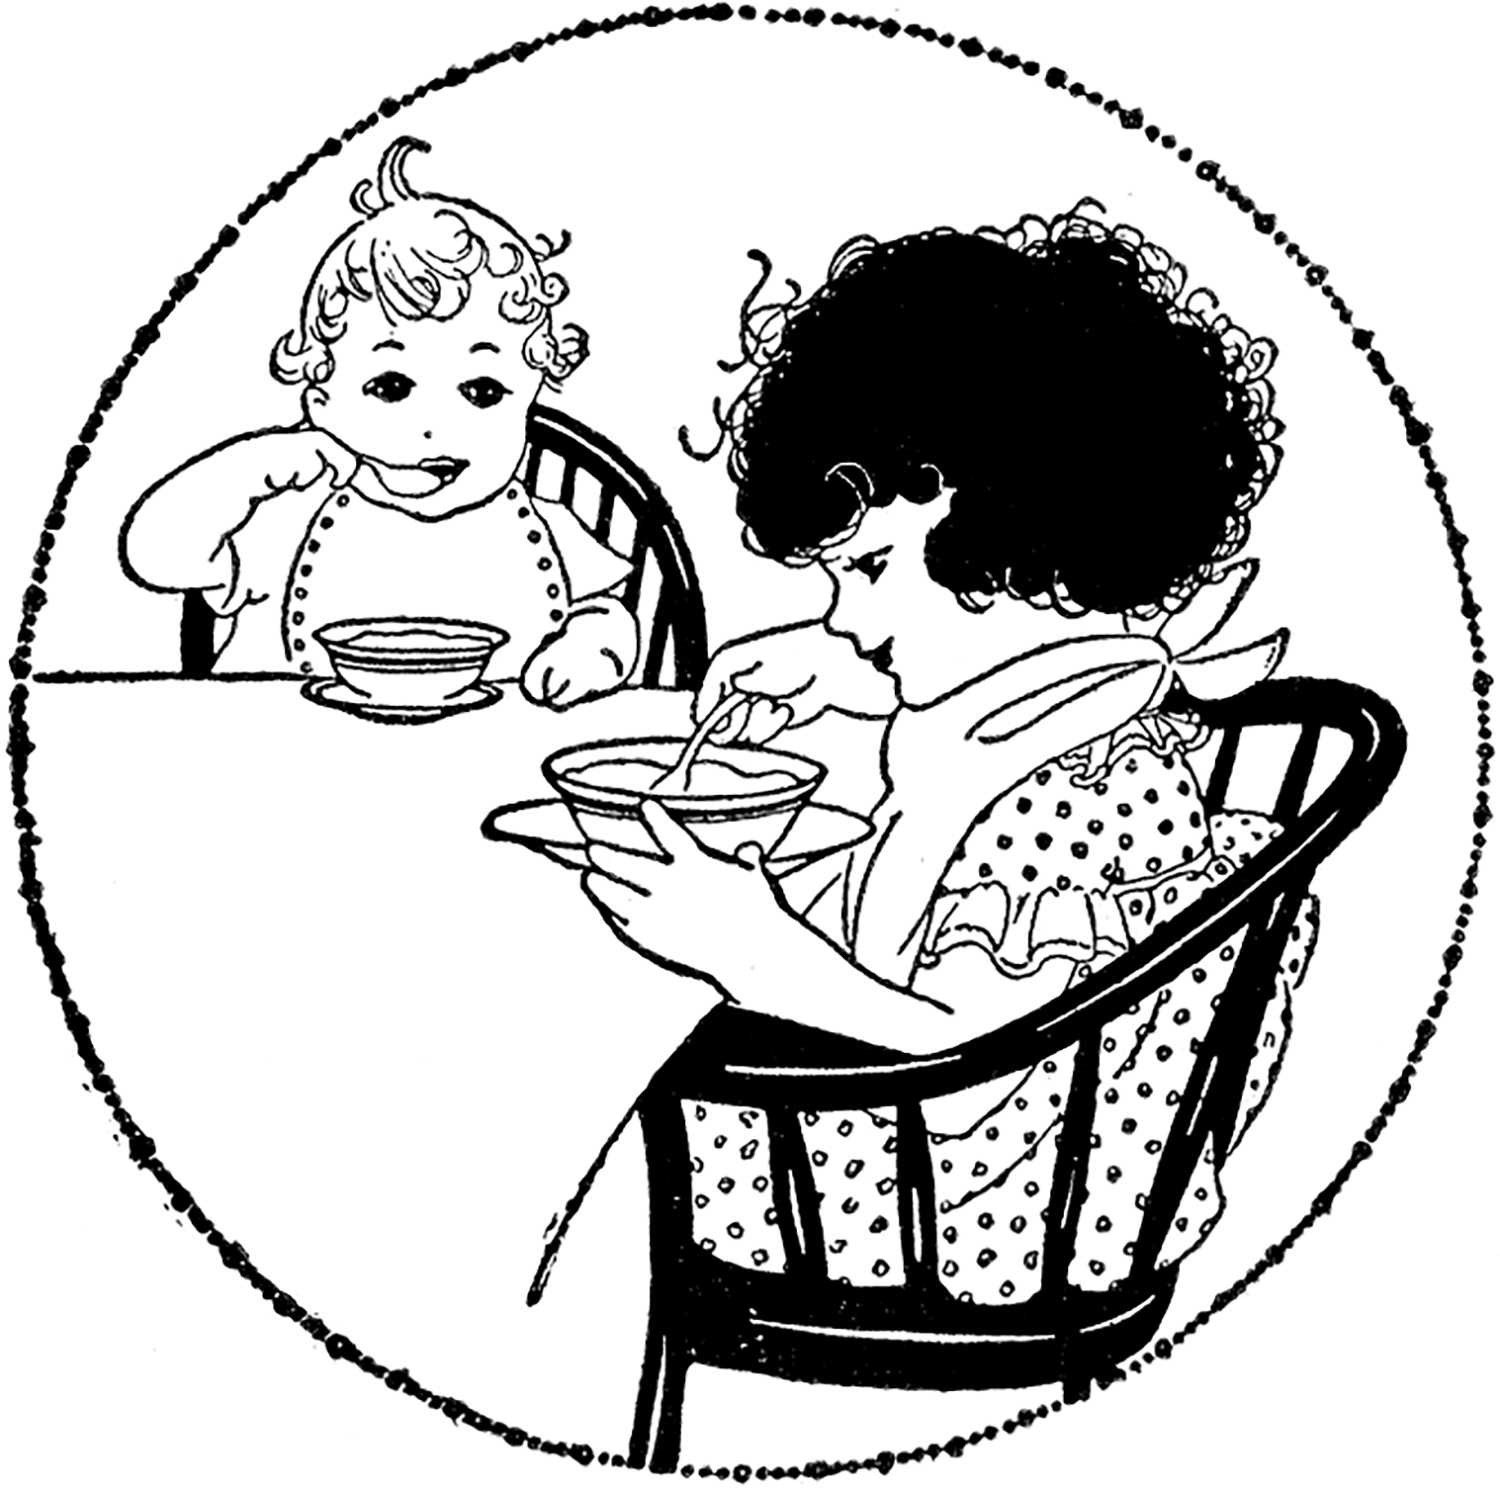 Breakfast clipart vintage. Time image the graphics